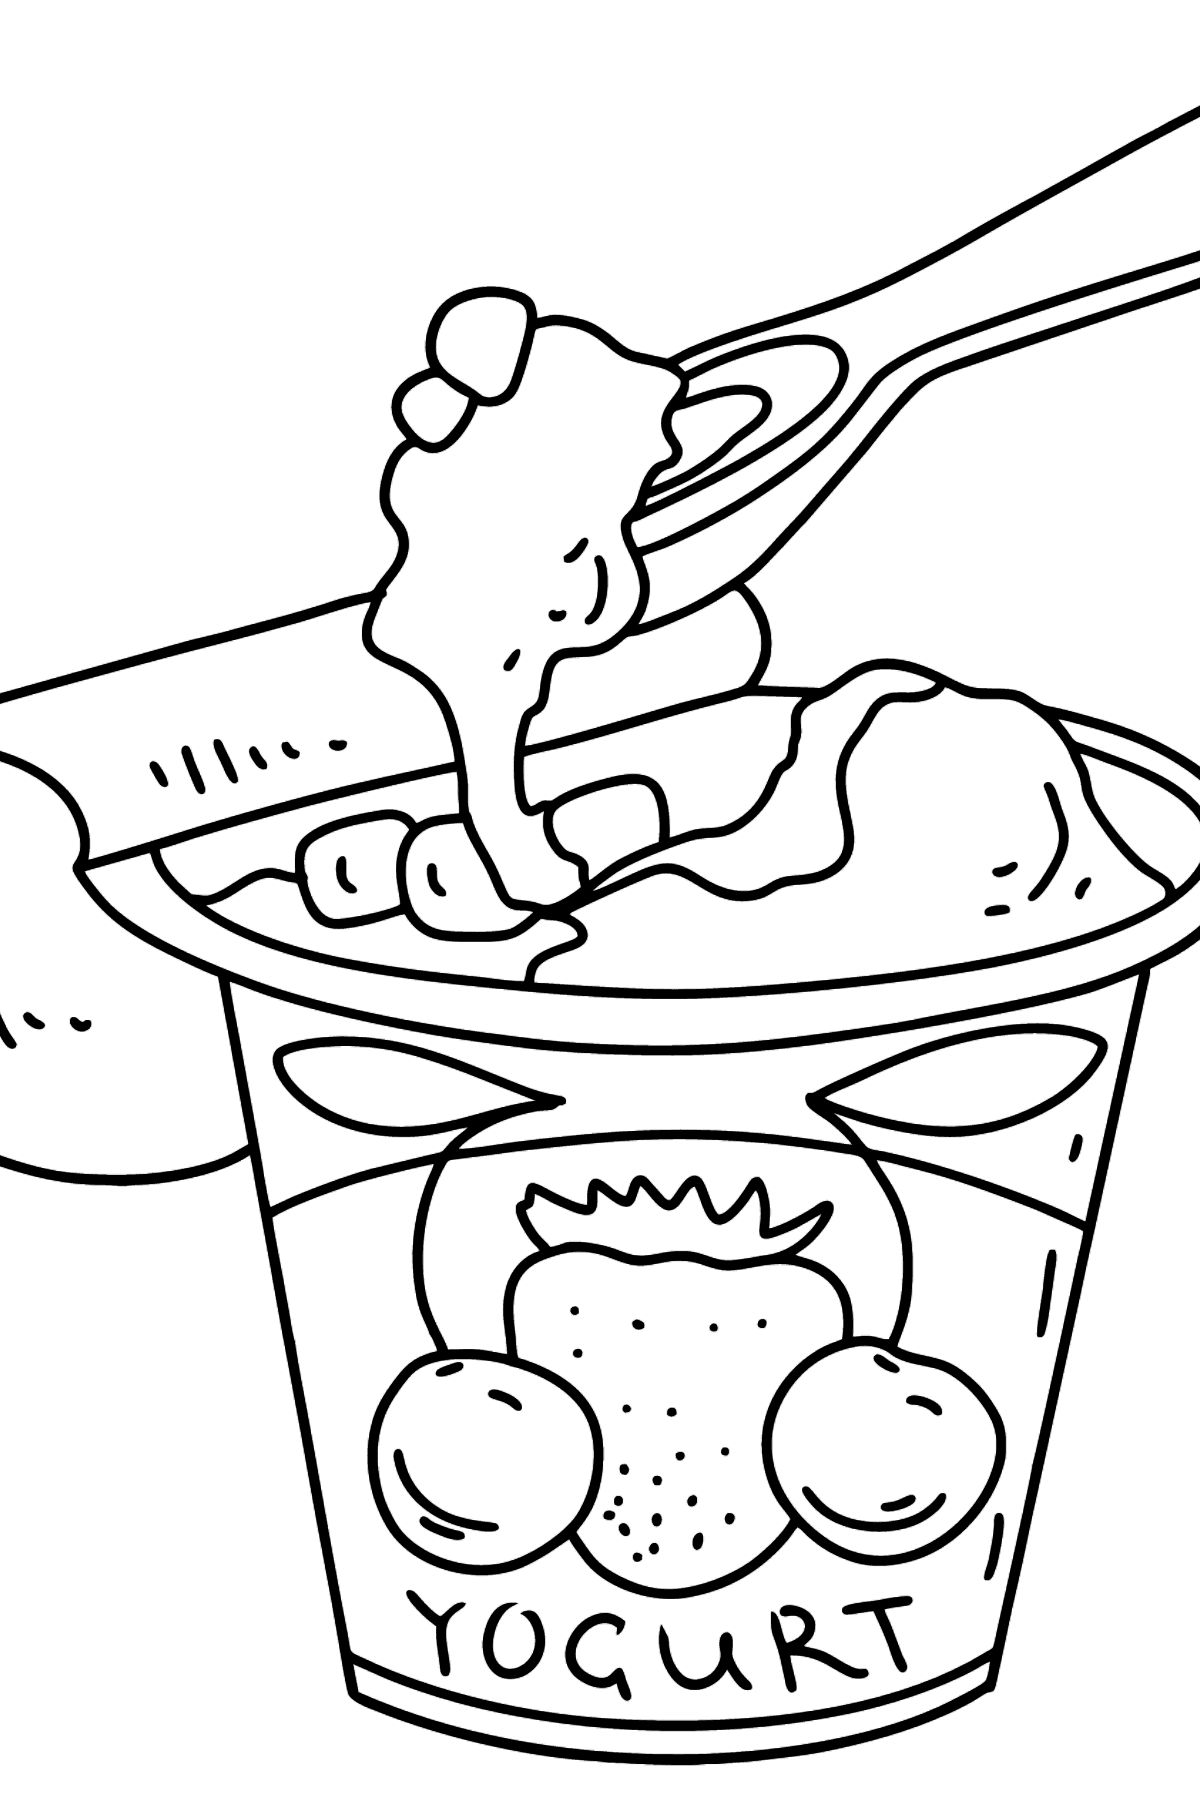 Yogurt with Berries coloring page - Coloring Pages for Kids